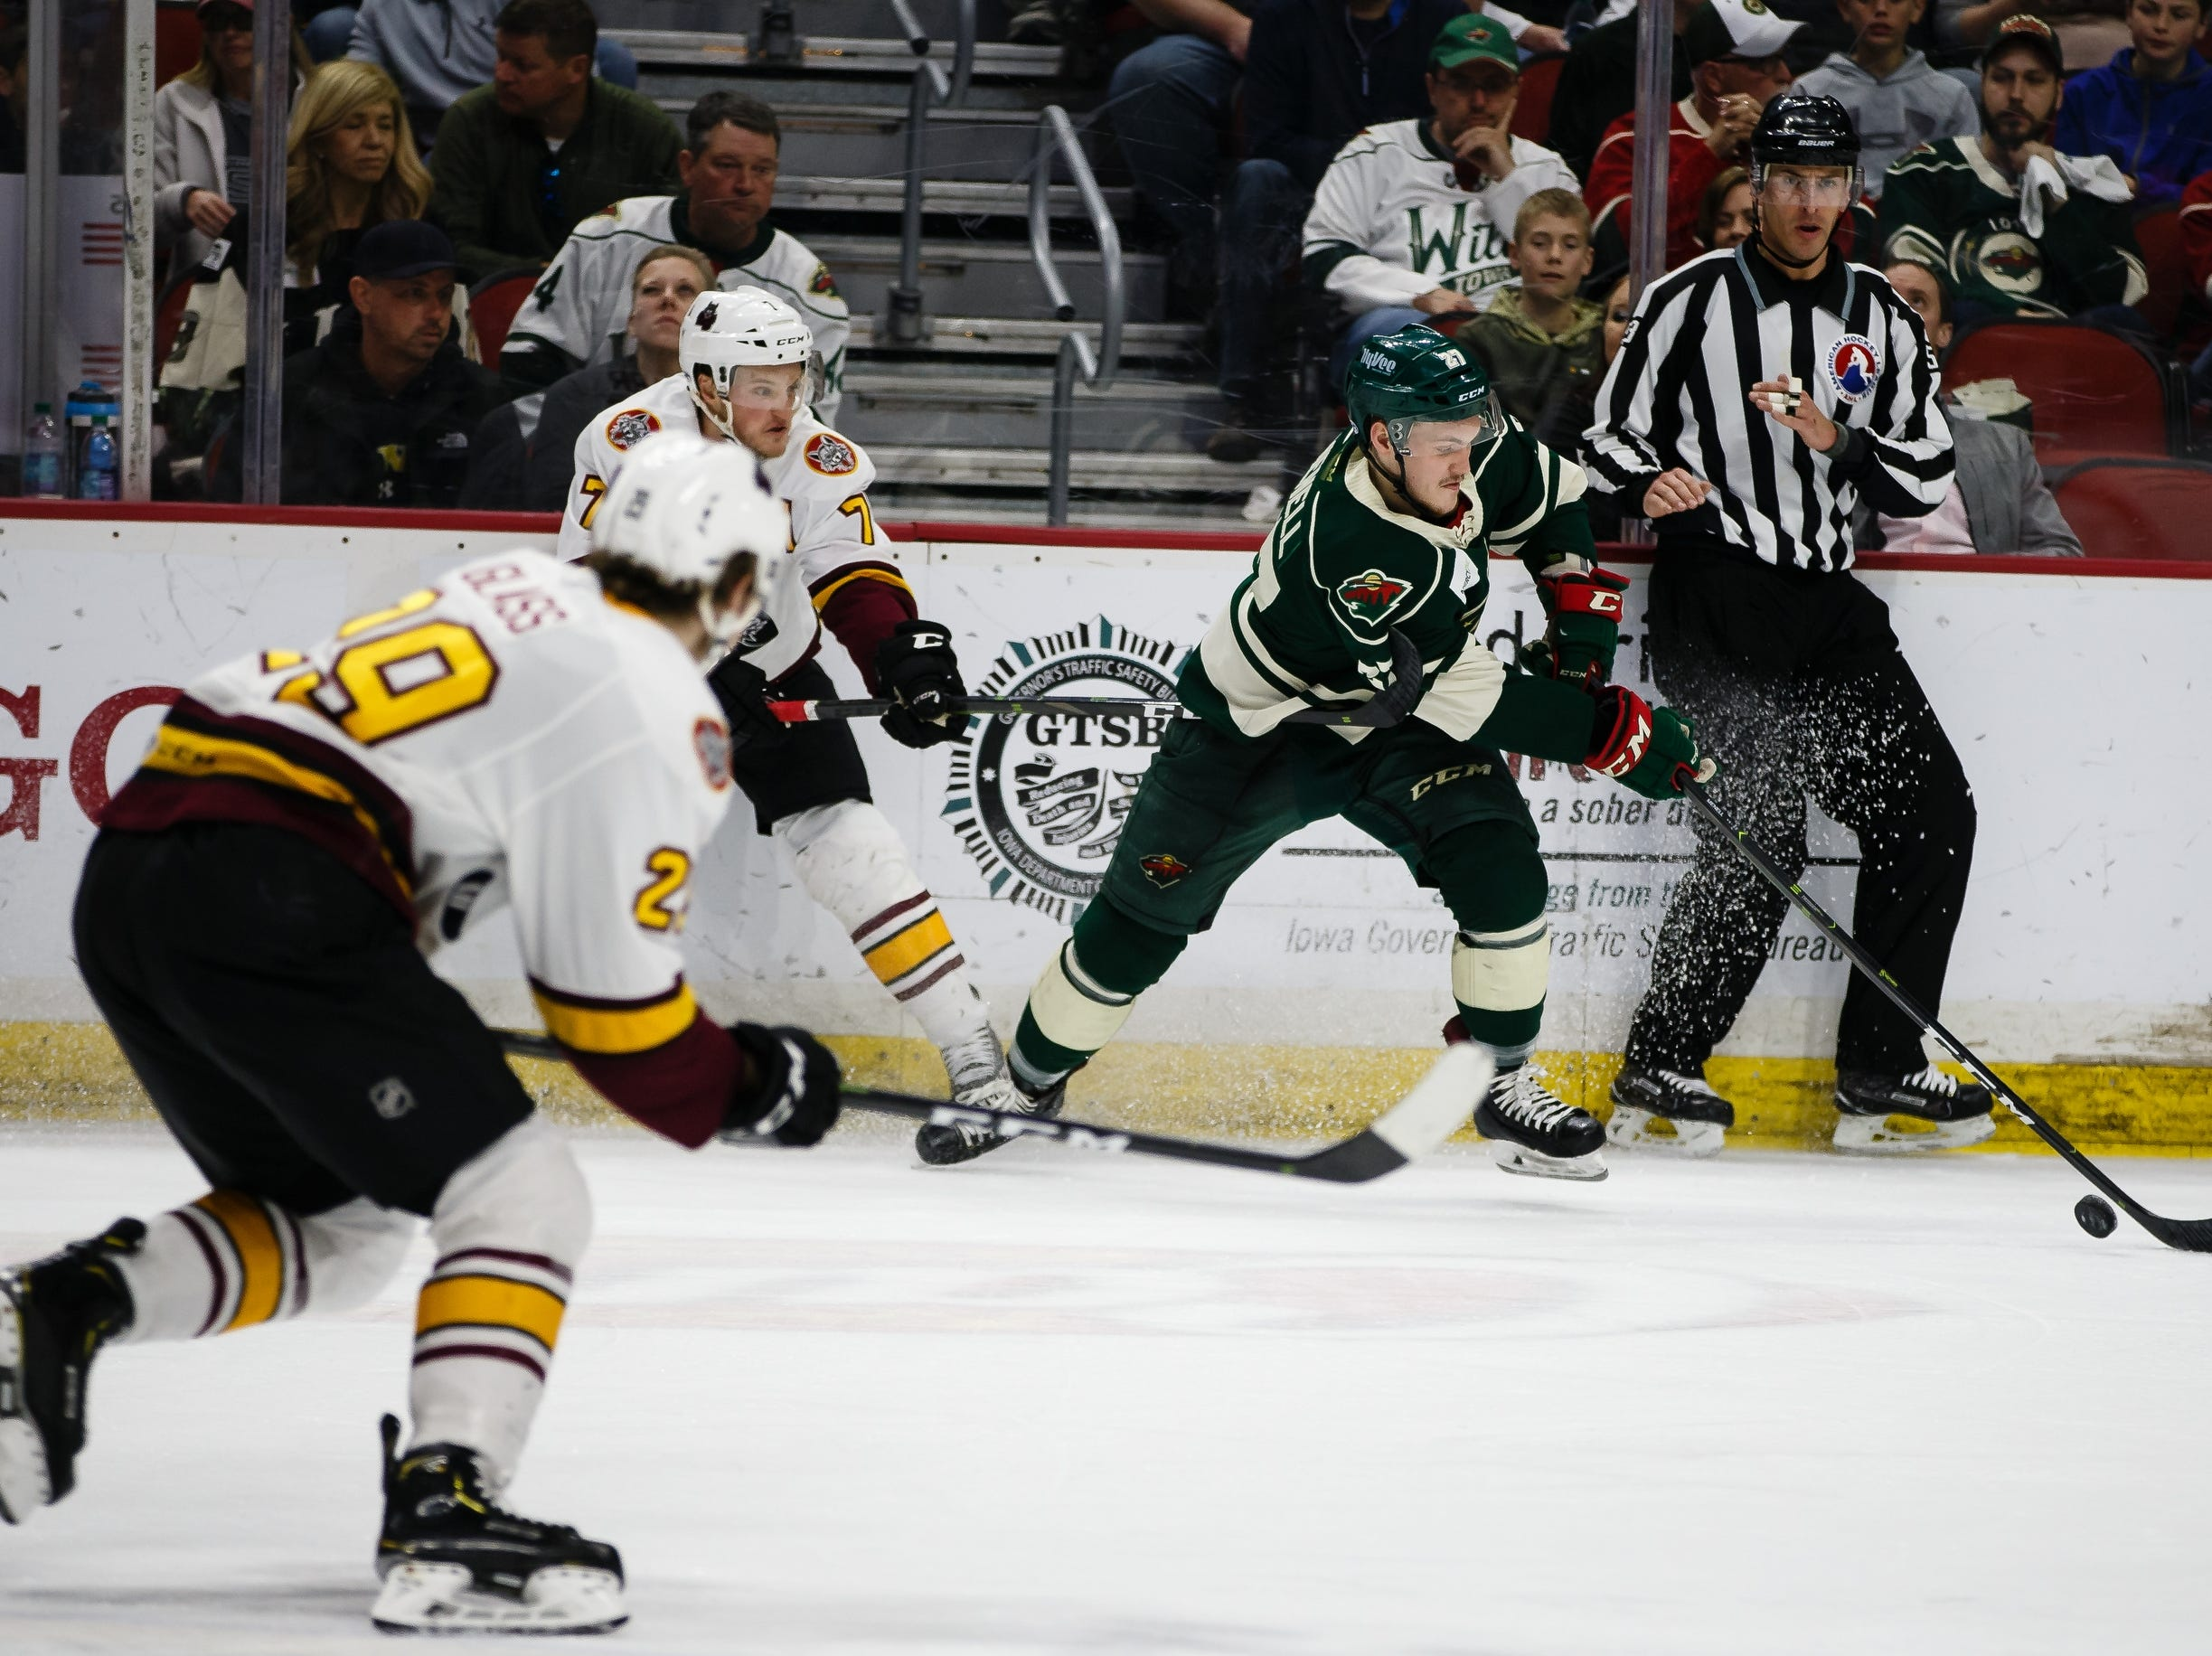 The Iowa Wild's Brennan Menell tries to get away from the Chicago Wolves Daniel Carr during the second period of their Calder Cup playoff hockey game on Friday, May 10, 2019, in Des Moines.